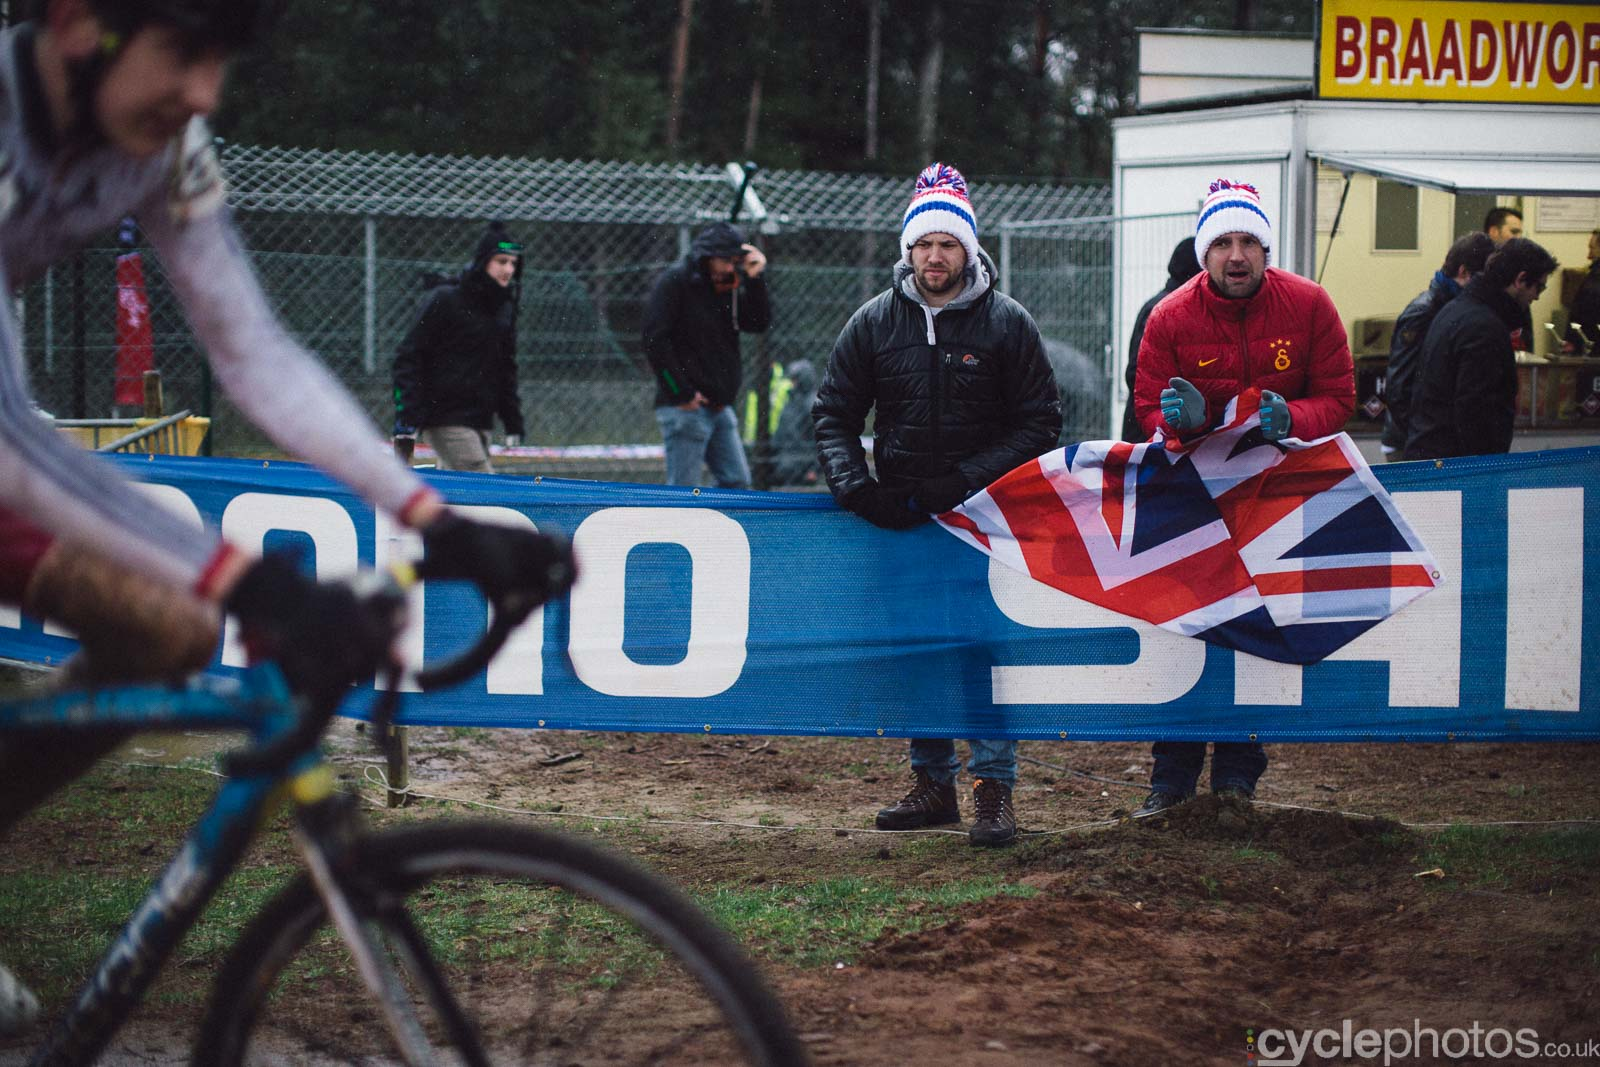 2016-cyclephotos-cyclocross-world-championships-zolder-113213-go-team-gb